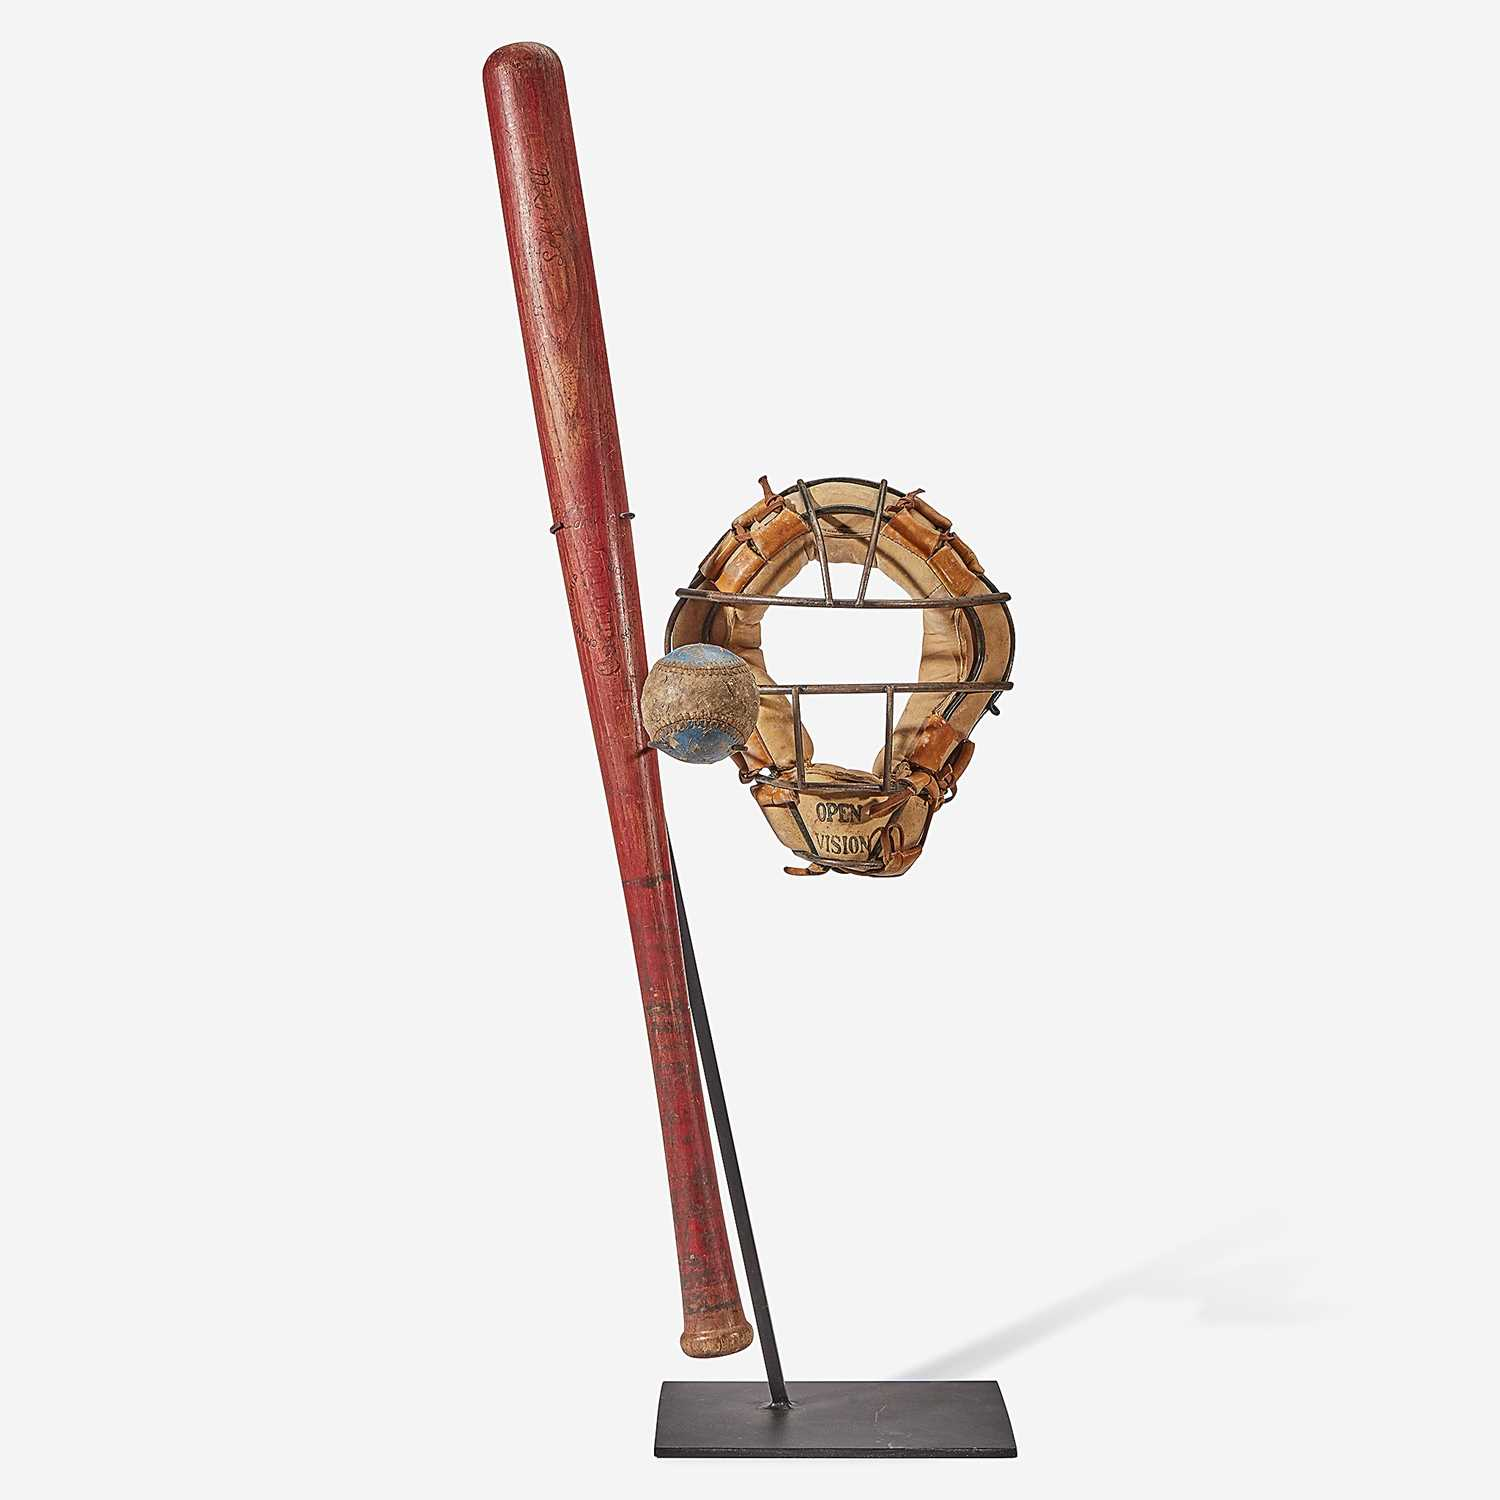 Lot 245 - A baseball assemblage: red stained softball bat, catcher's mask and practice ball